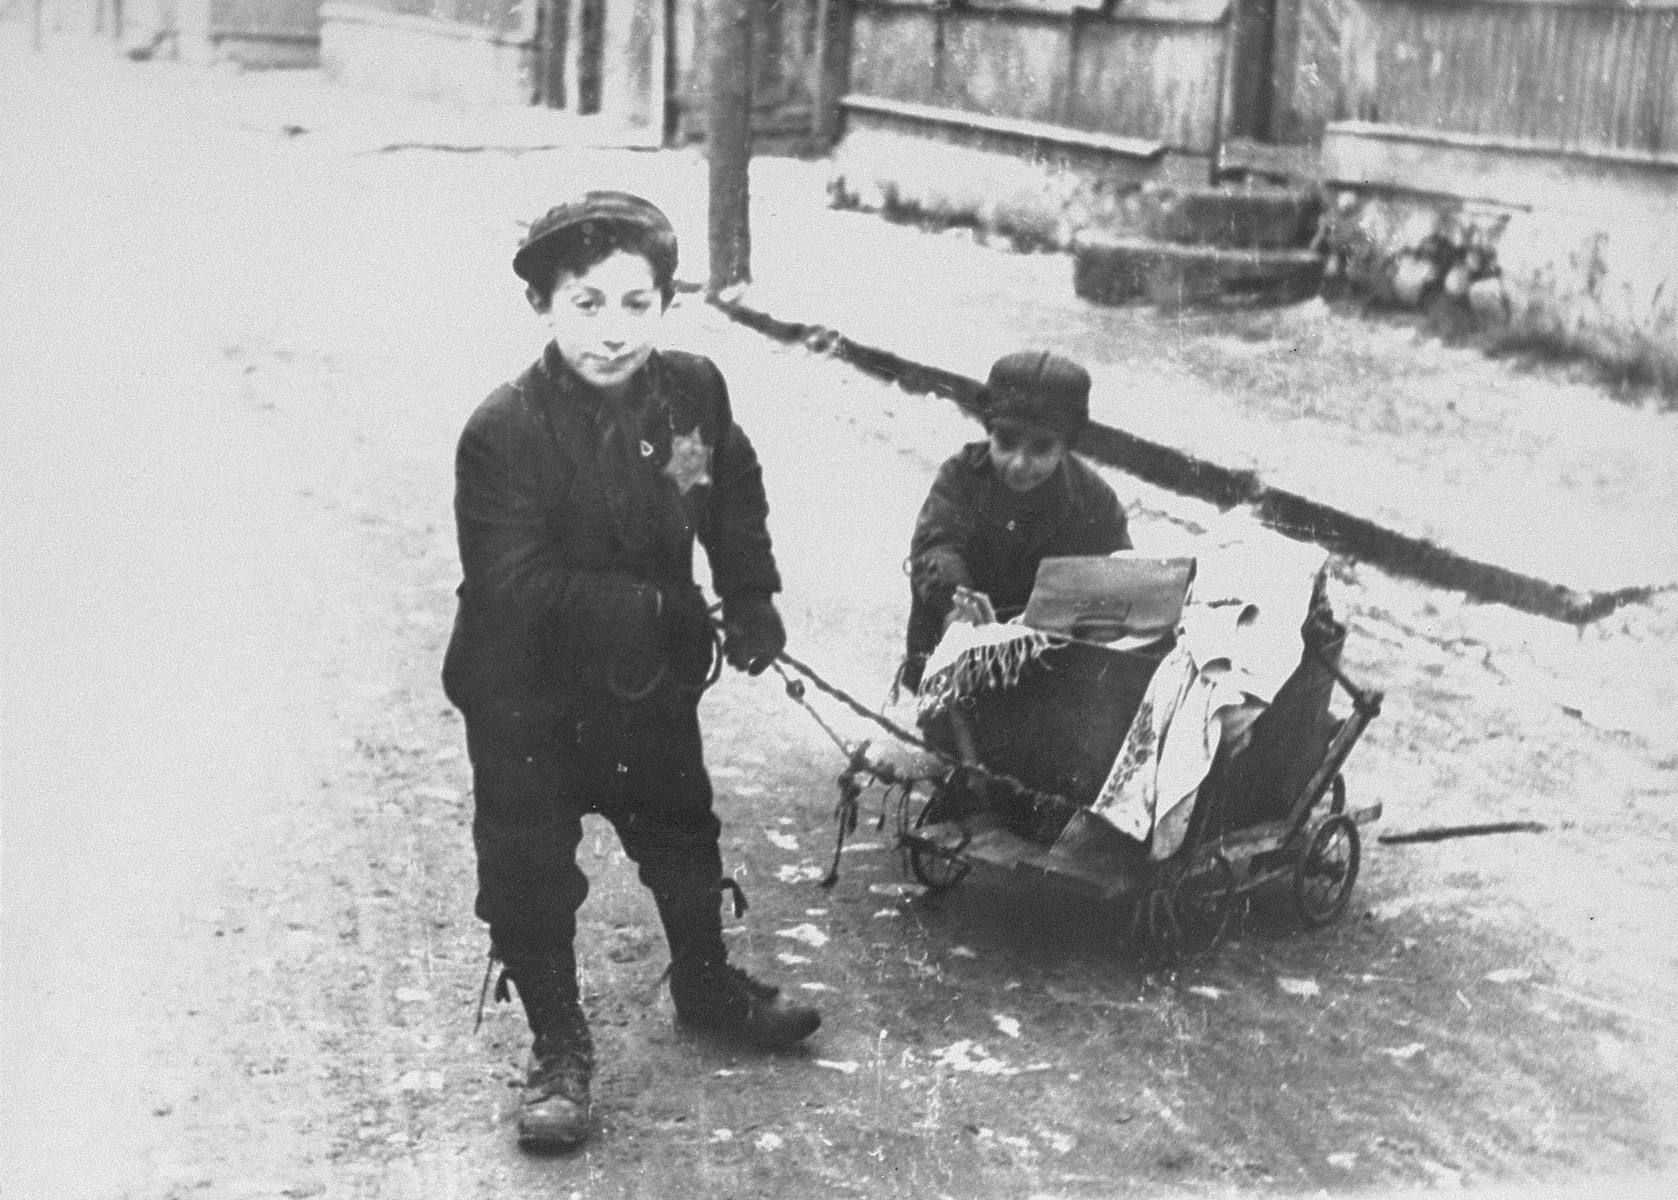 """Two young boys pull and push a wagon in the Kovno ghetto.   According to Solly Ganor: """"Two orphans whose parents were murdered in the beginning of the war. There were many children like them in the ghetto. They lived with a sick grandmother in half a room sharing with other two families. He was the provider of the family, trading, stealing and begging. I would see him at the corner """"market"""" place, trying to sell old shoes, torn garments and old books. He, his little brother and his grandmother were murdered at the """"Children's Action"""". """""""